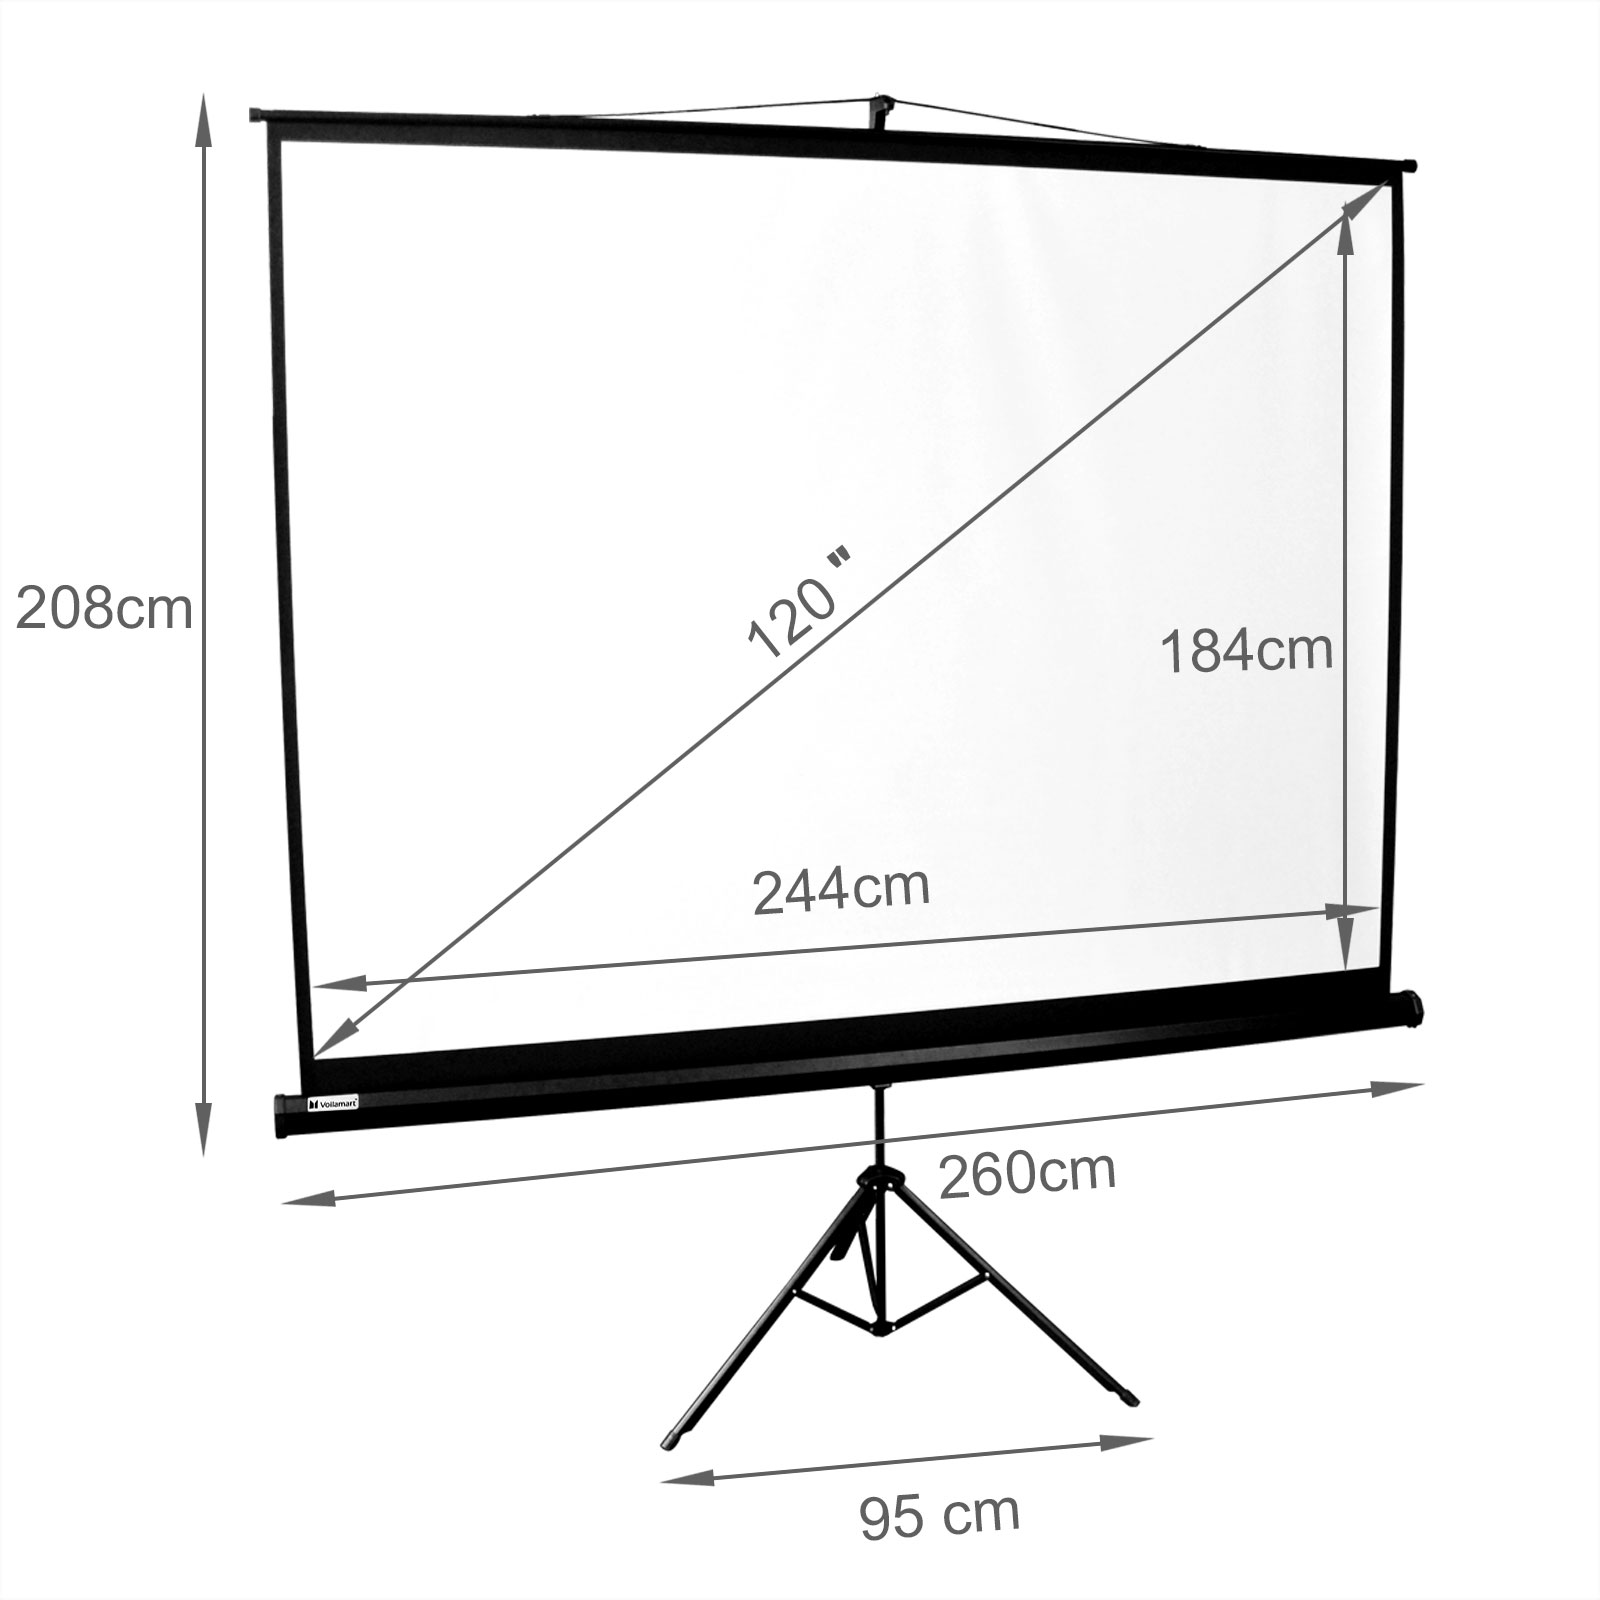 120 Projector Screen Tripod Stand Tv Hd Conference